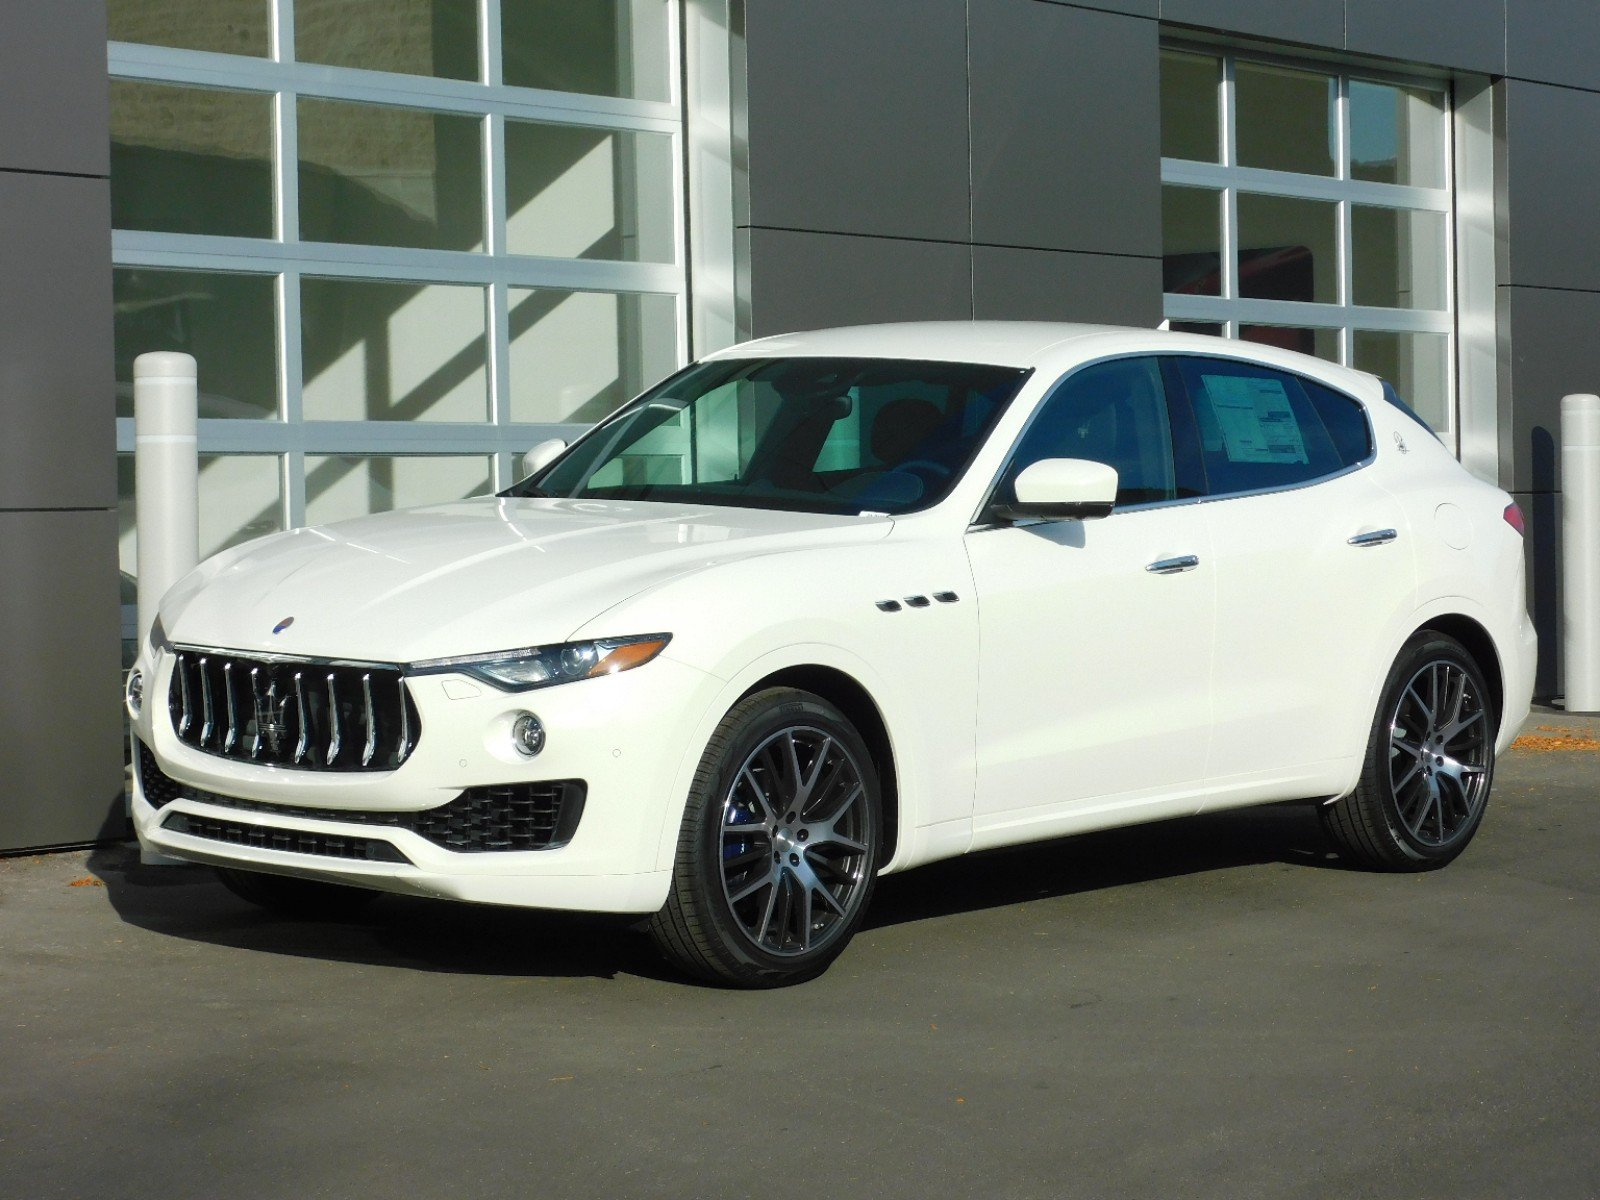 New 2019 Maserati Levante LEVANTE 350hp AWD4dr